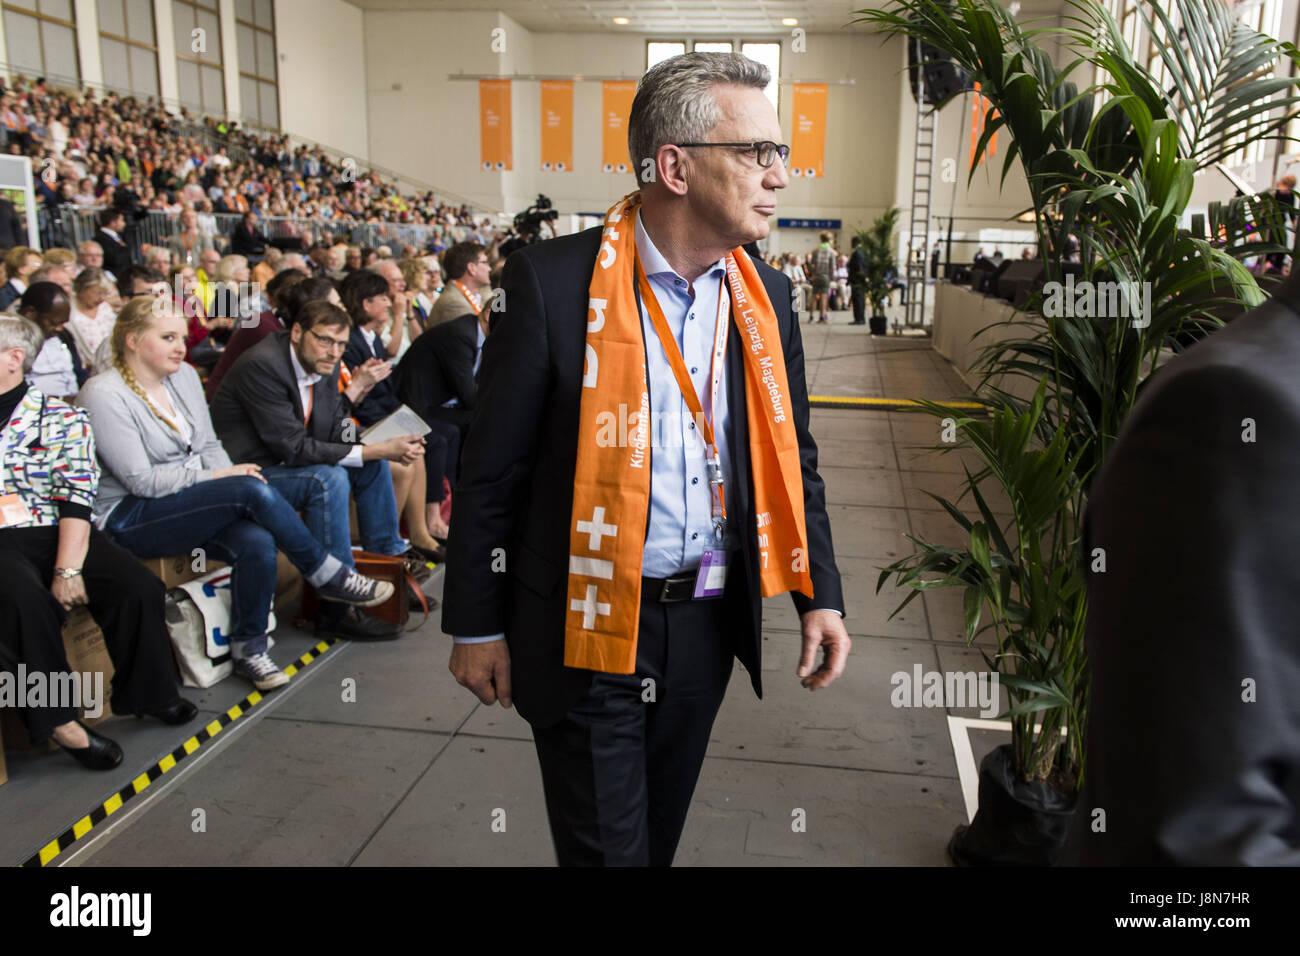 May 25, 2017 - Berlin, Berlin, Germany - THOMAS DE MAIZIERE, German Federal Minister of the Interior and politician - Stock Image